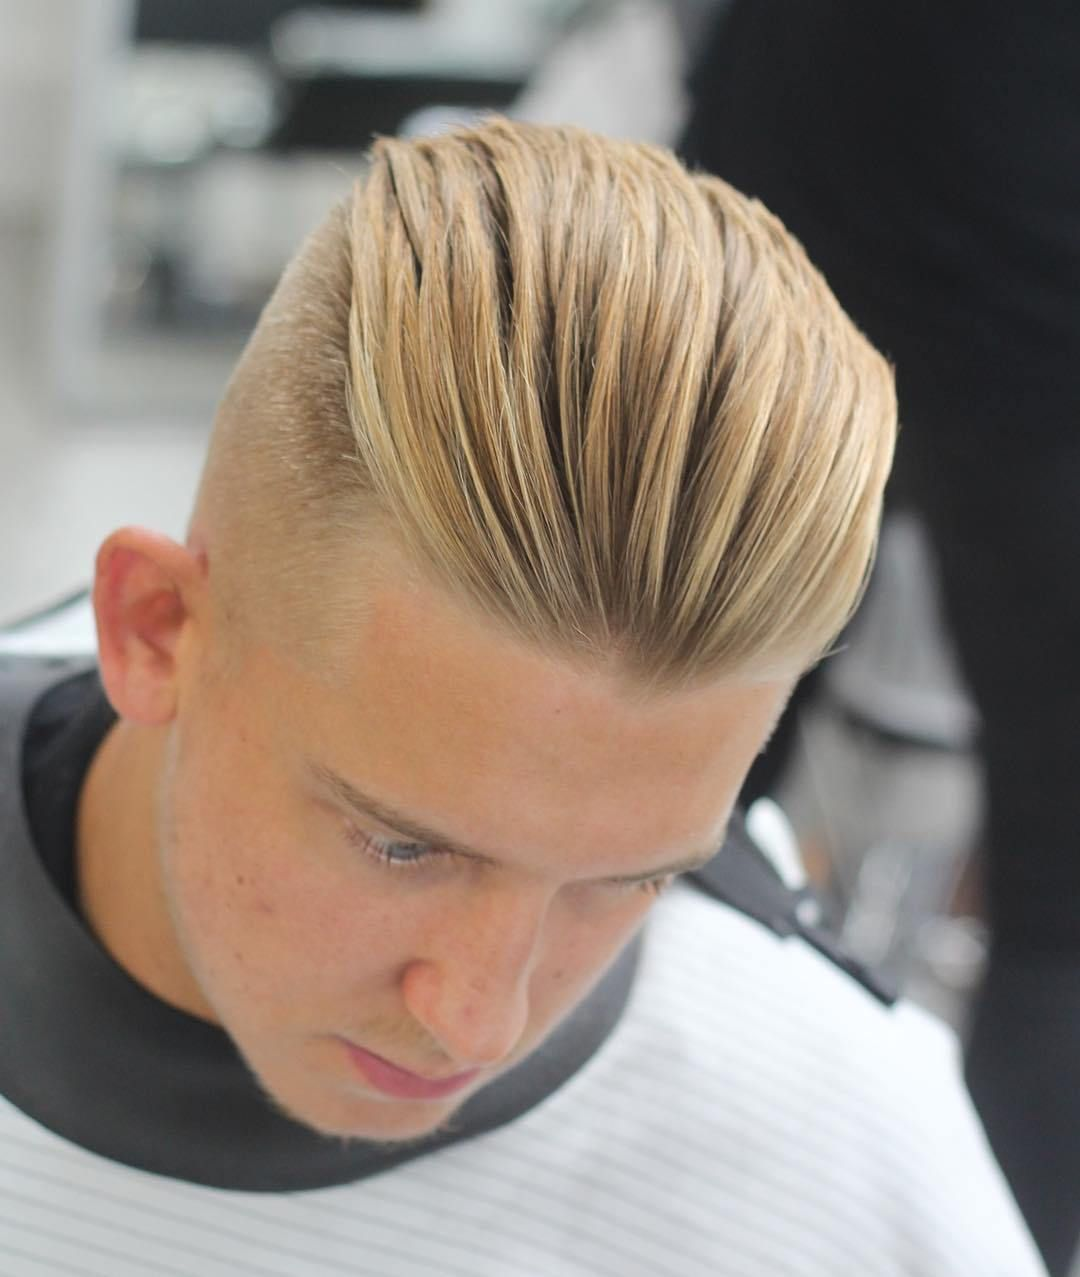 Slicked Back Haircuts Men Haircuts For Blonde Hair Hair Styles